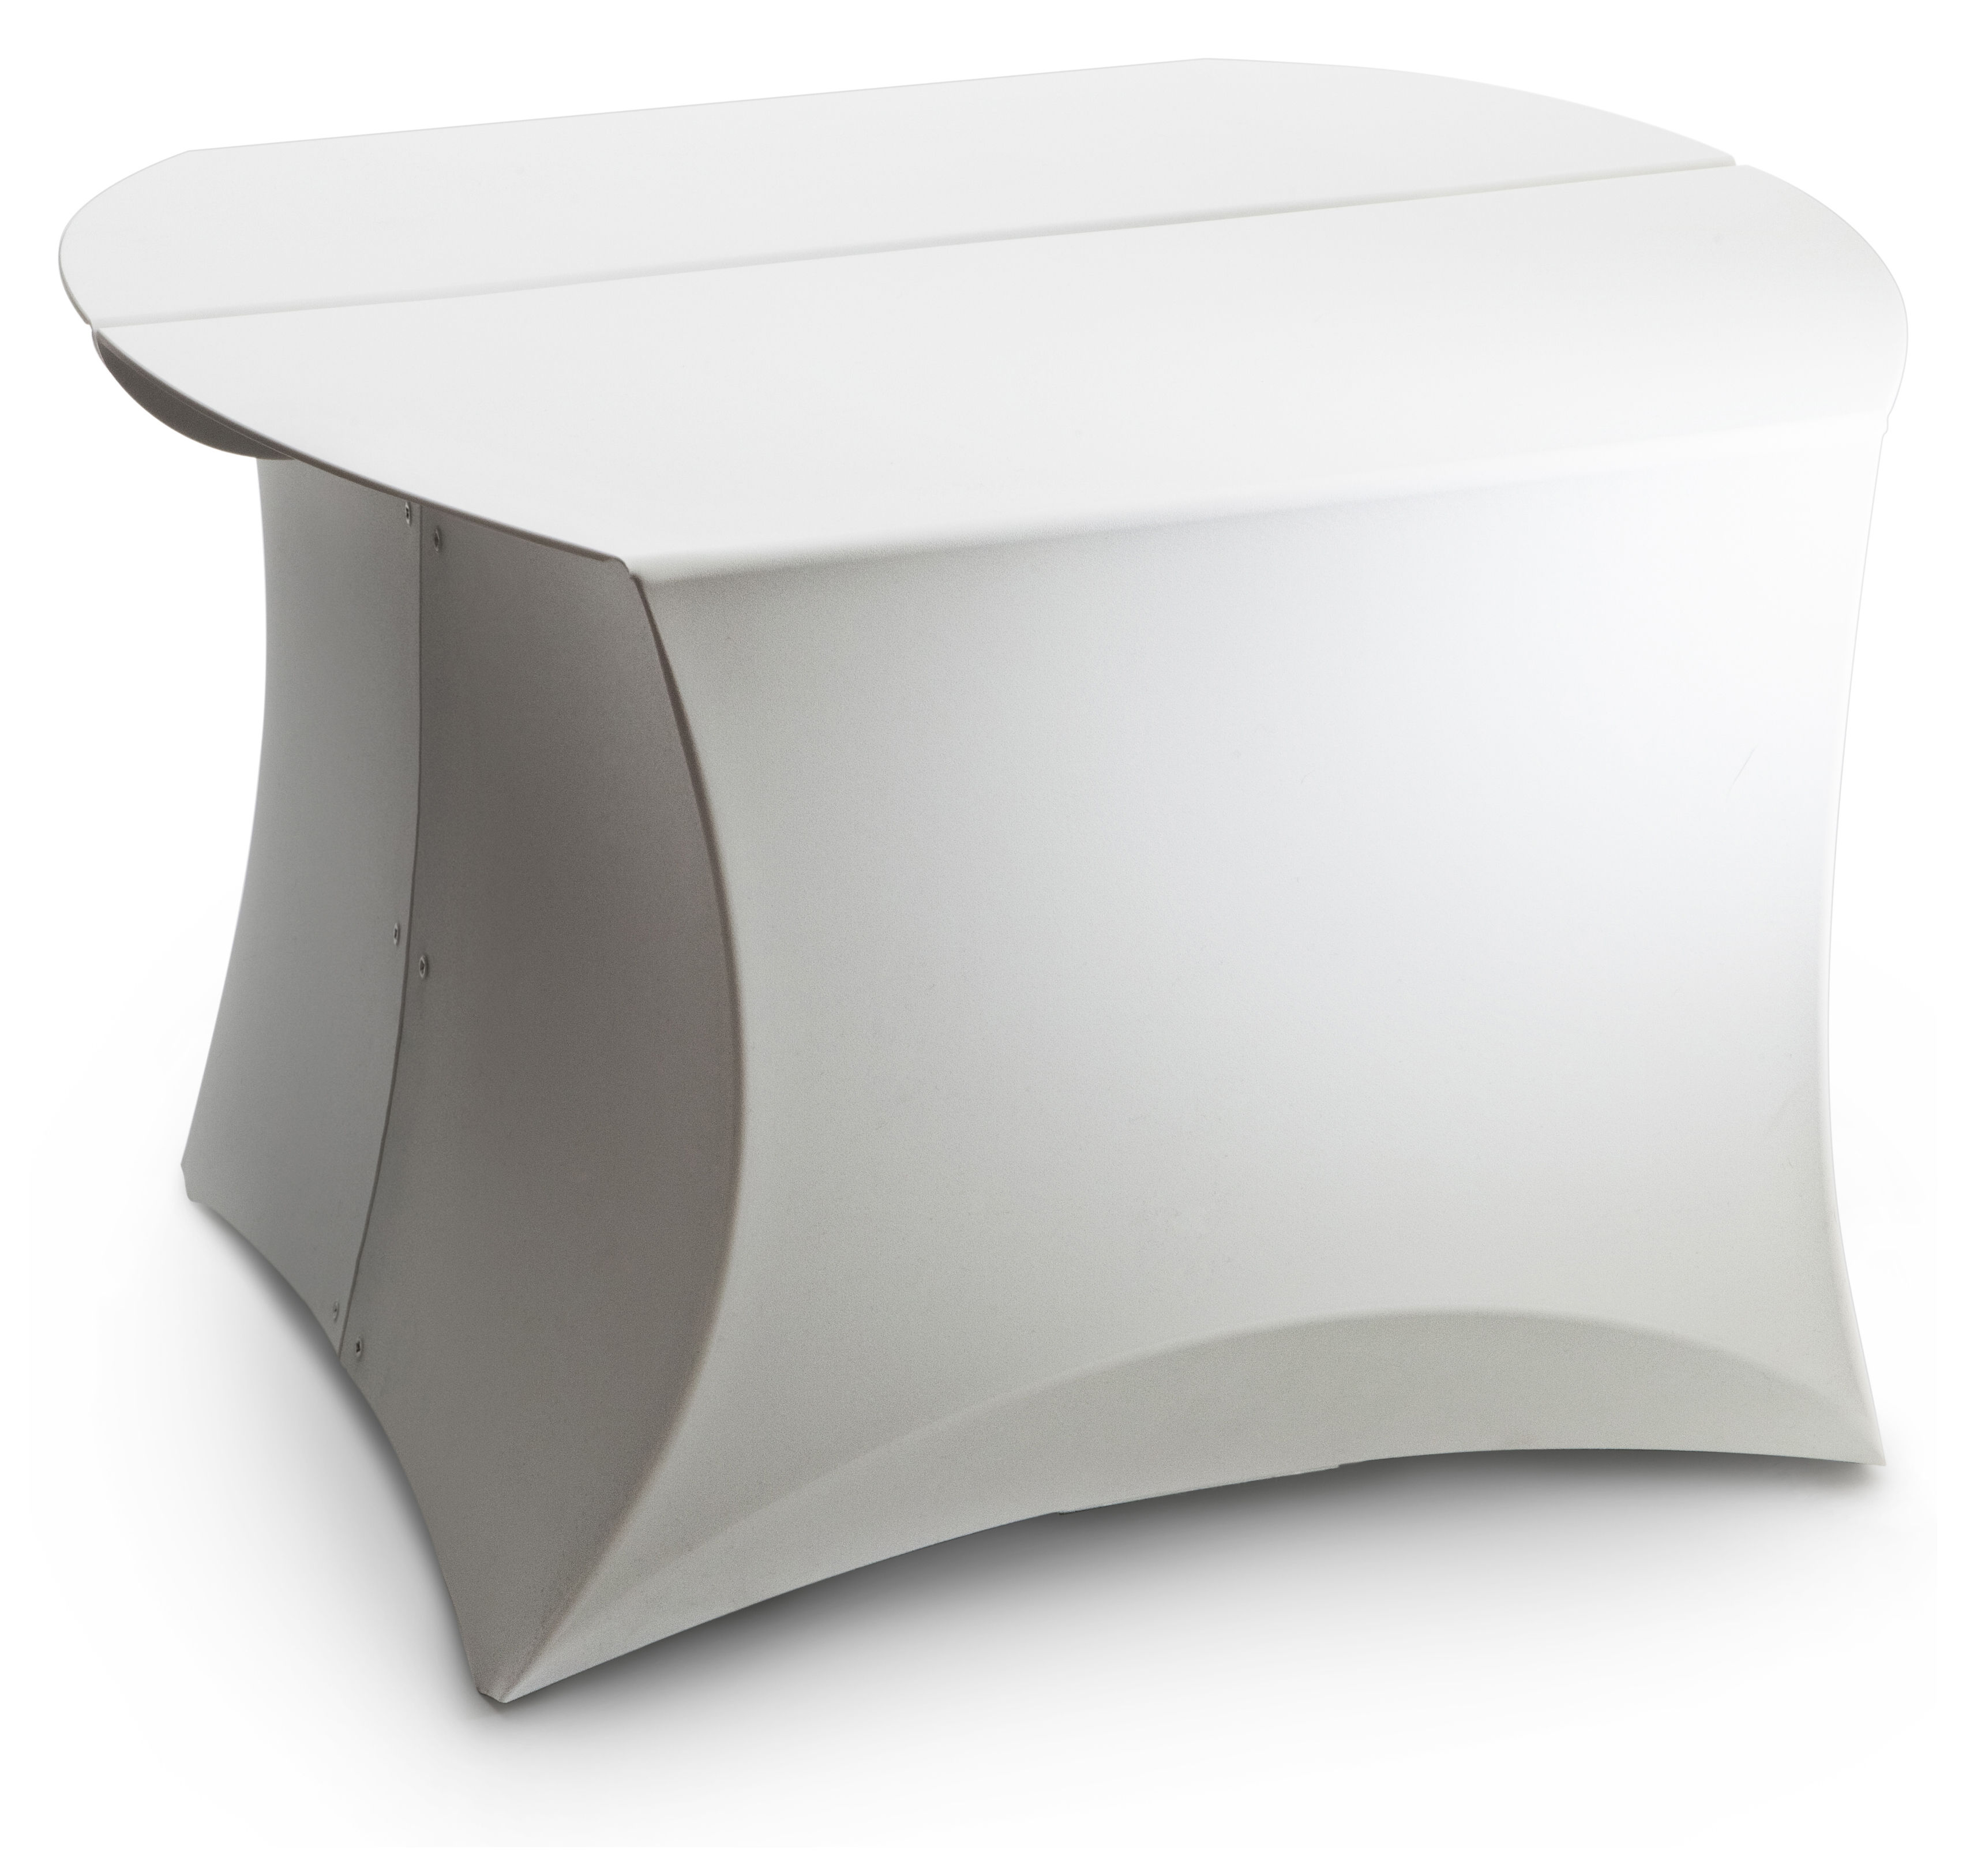 Mobilier - Tables basses - Table basse Coffee Small / 60 x 60 cm - Flux - Blanc - Polypropylène